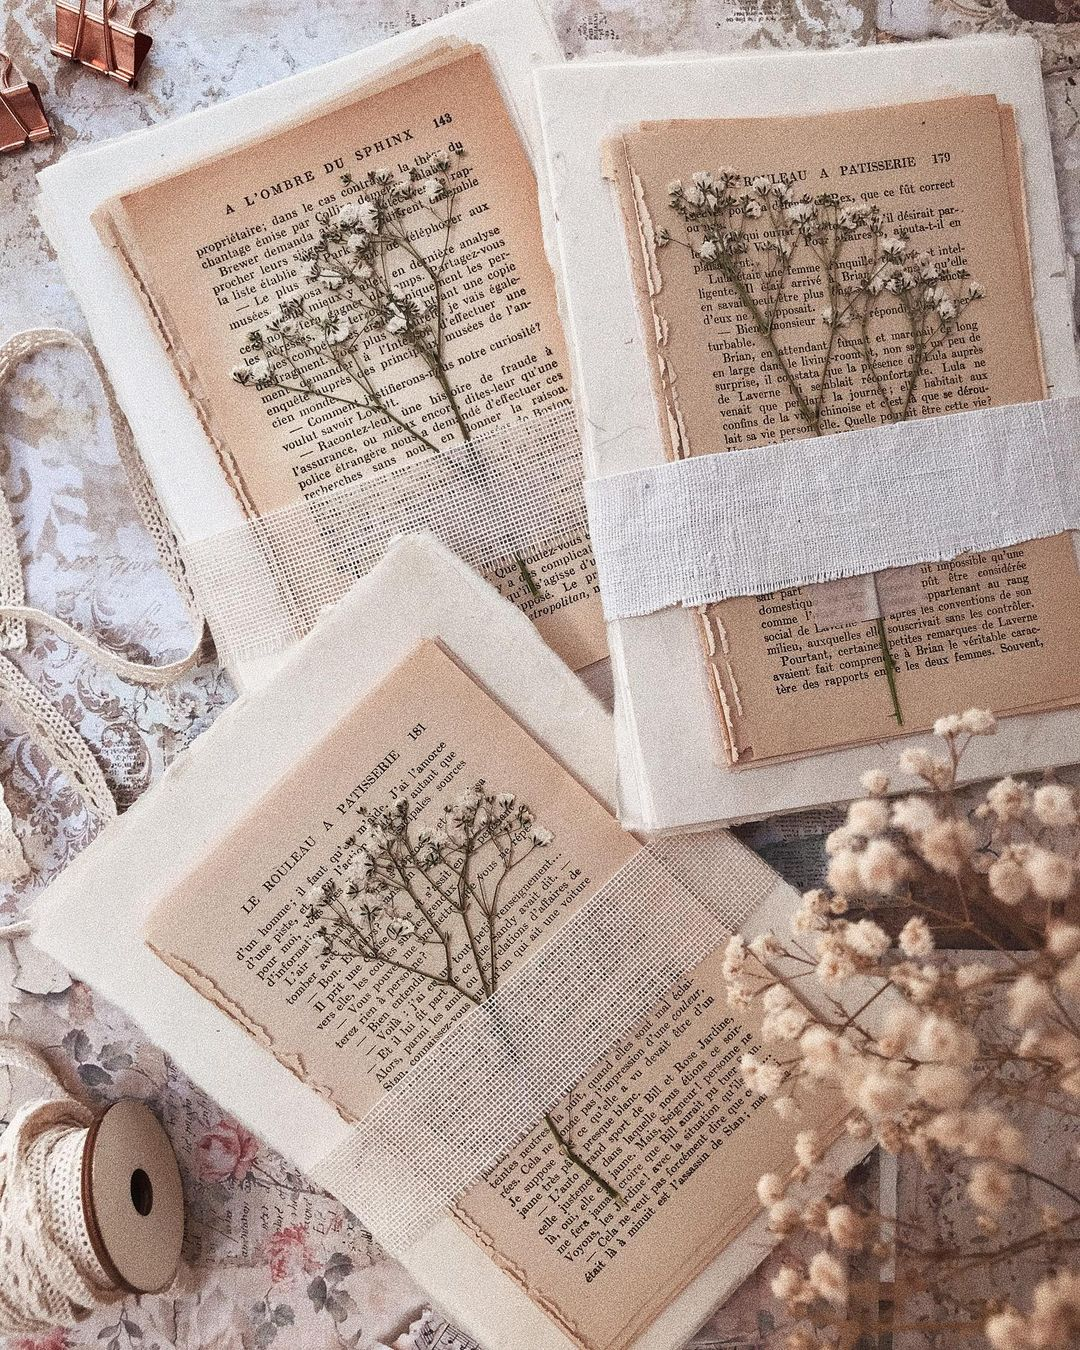 Gorgeous junk journal ideas and inspiration for your planner or memorabilia